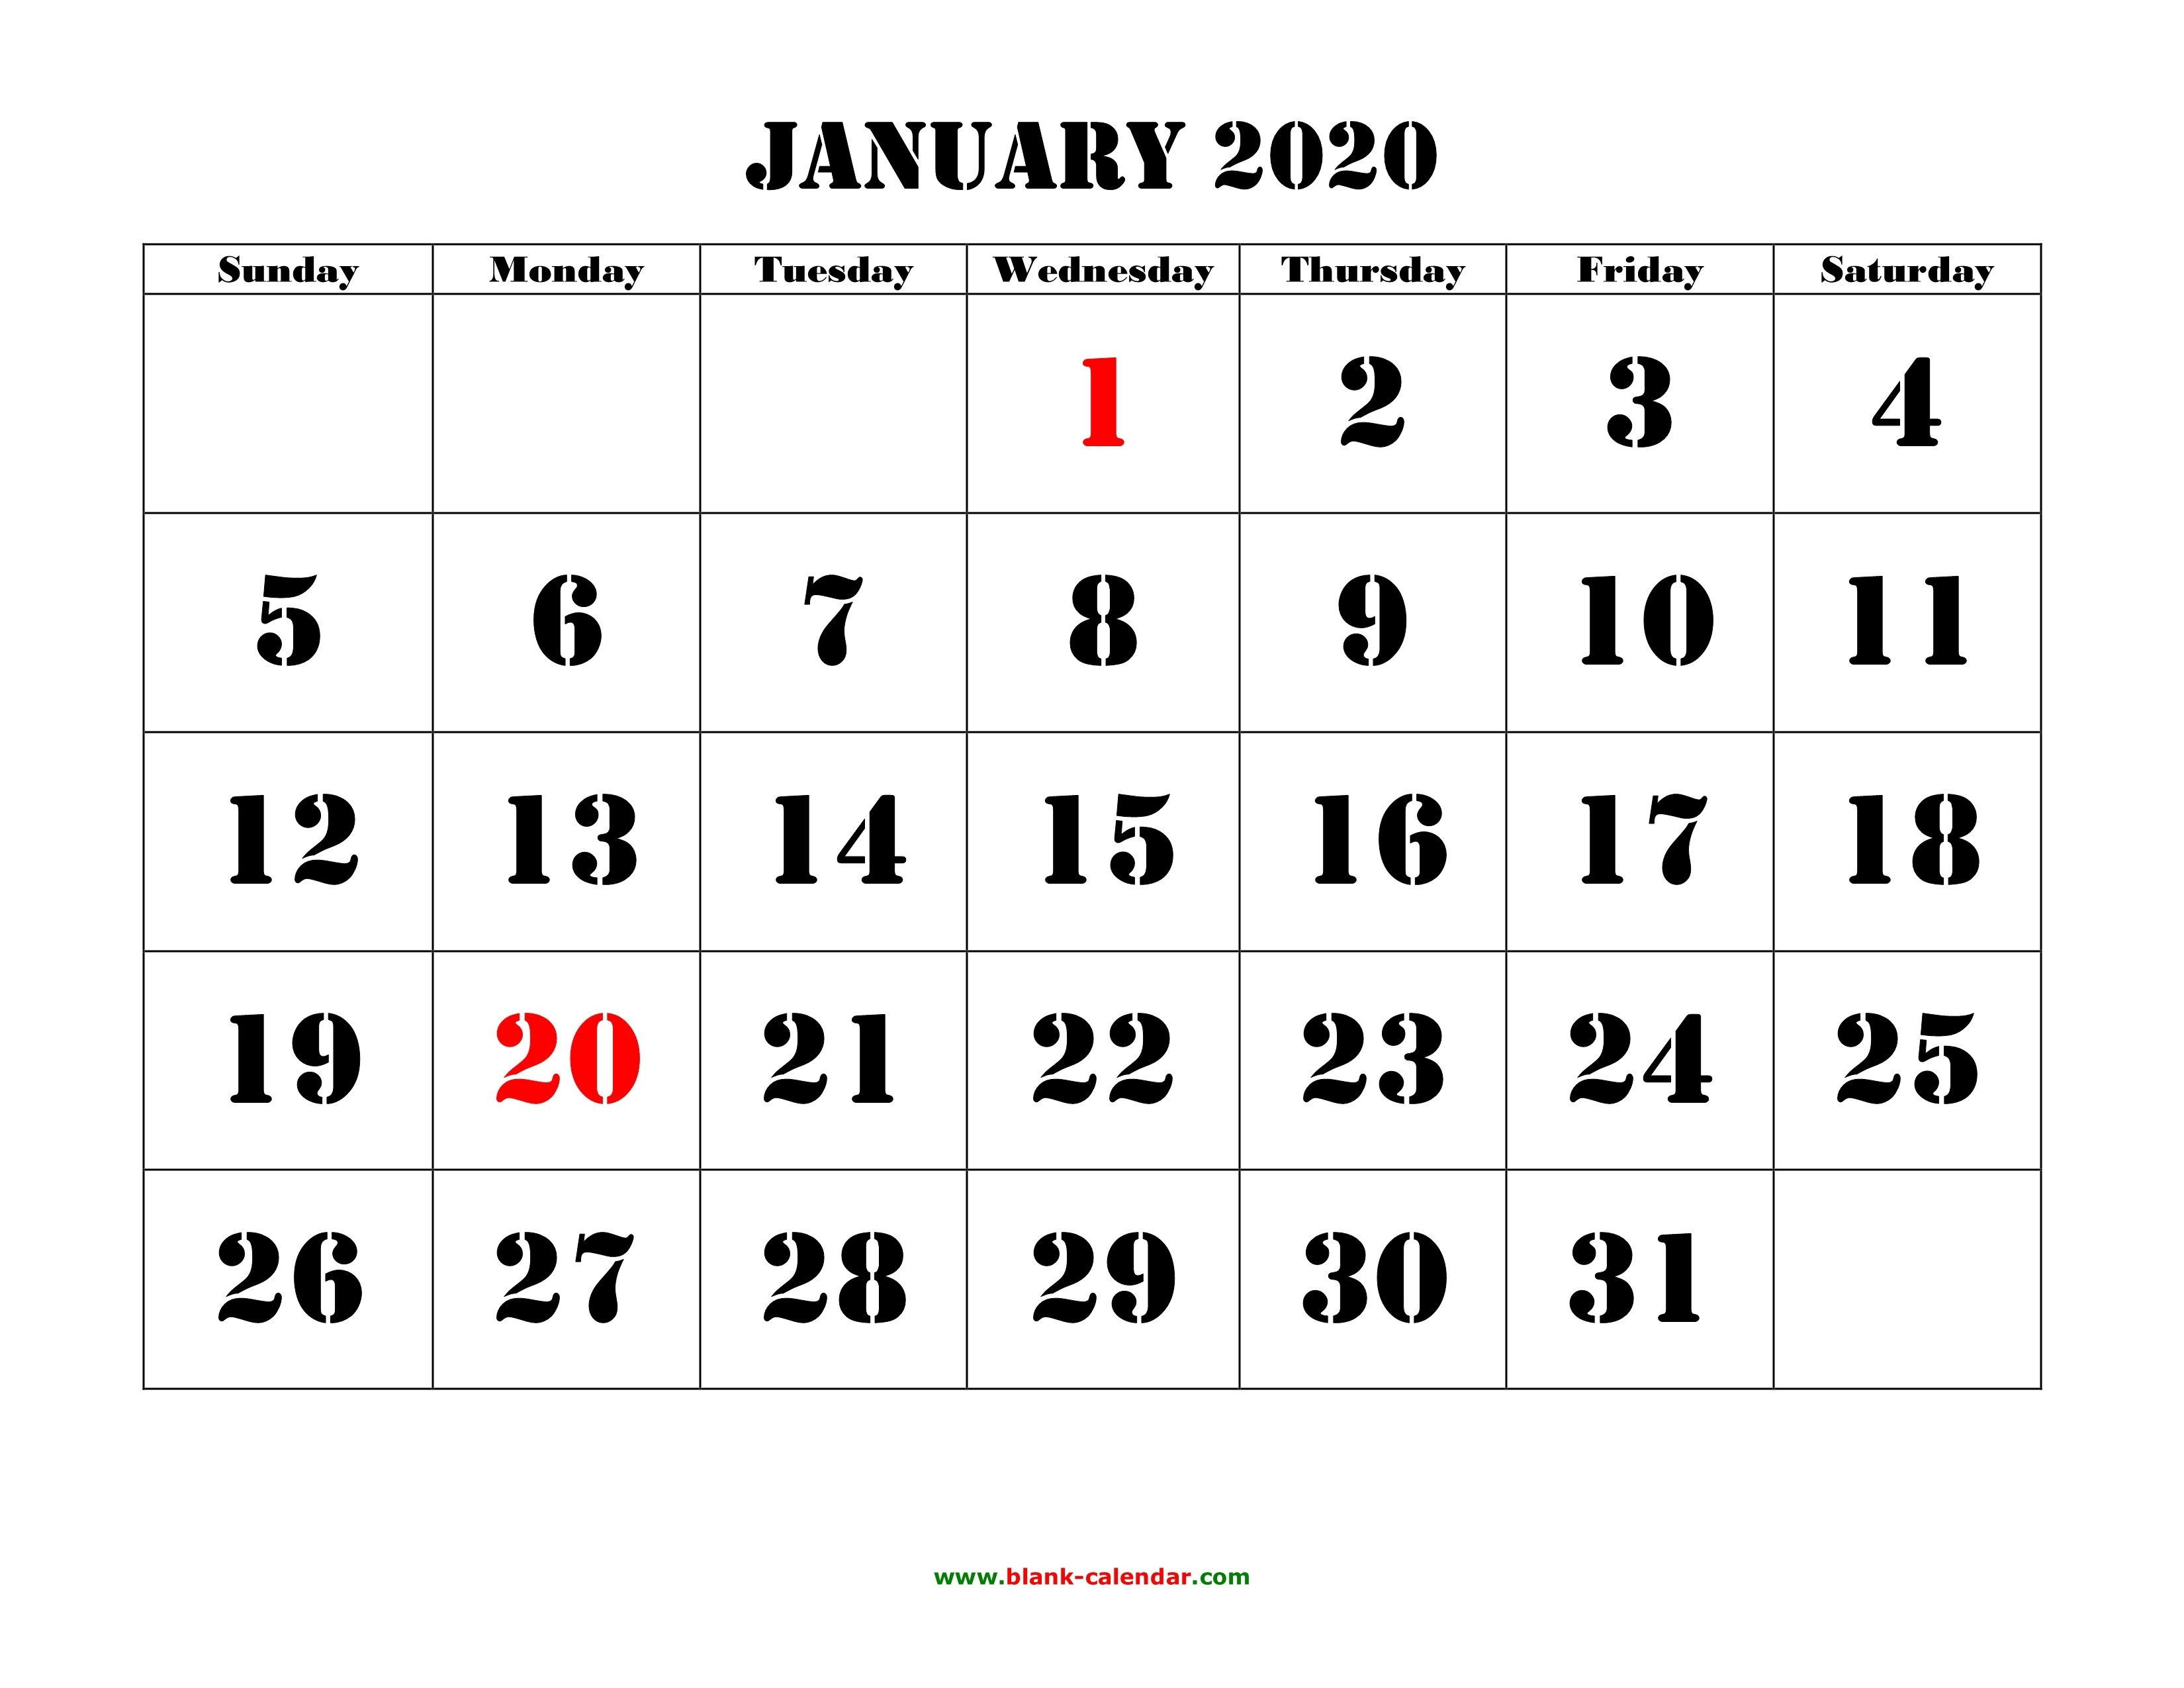 Printable Calendar 2020 | Free Download Yearly Calendar-Free Printable 2 Page Monthly Calendar 2020